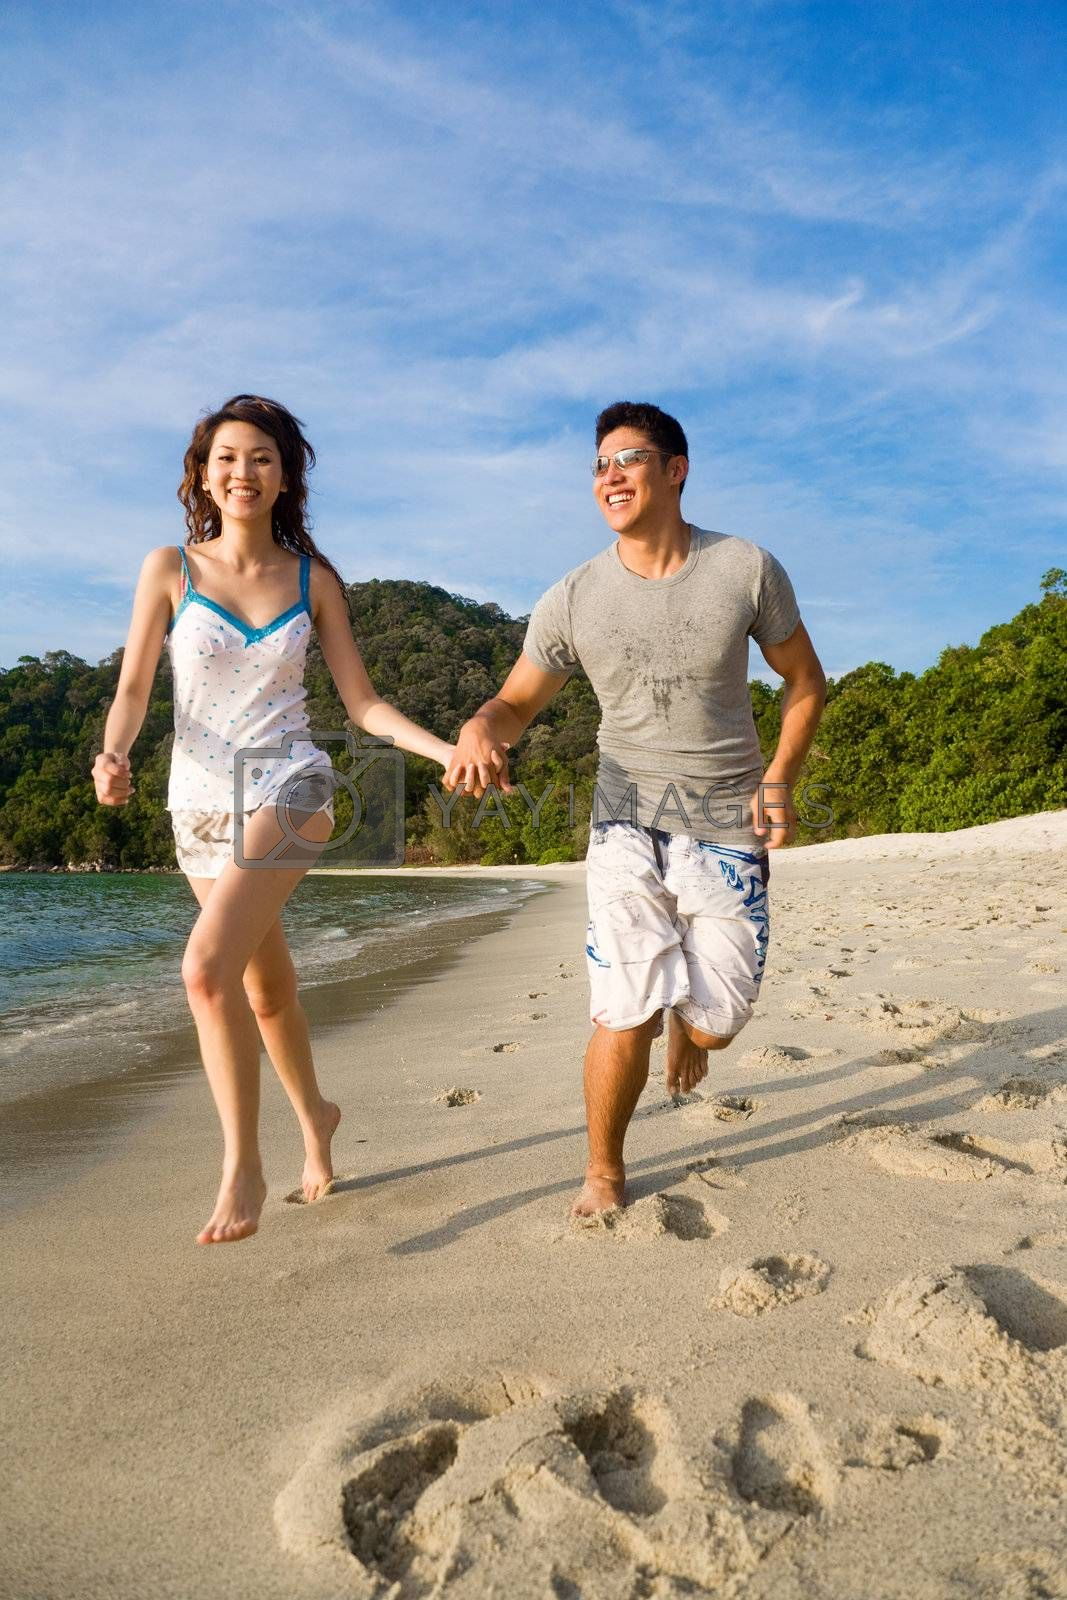 Royalty free image of loving couple having fun running by the beach by eyedear